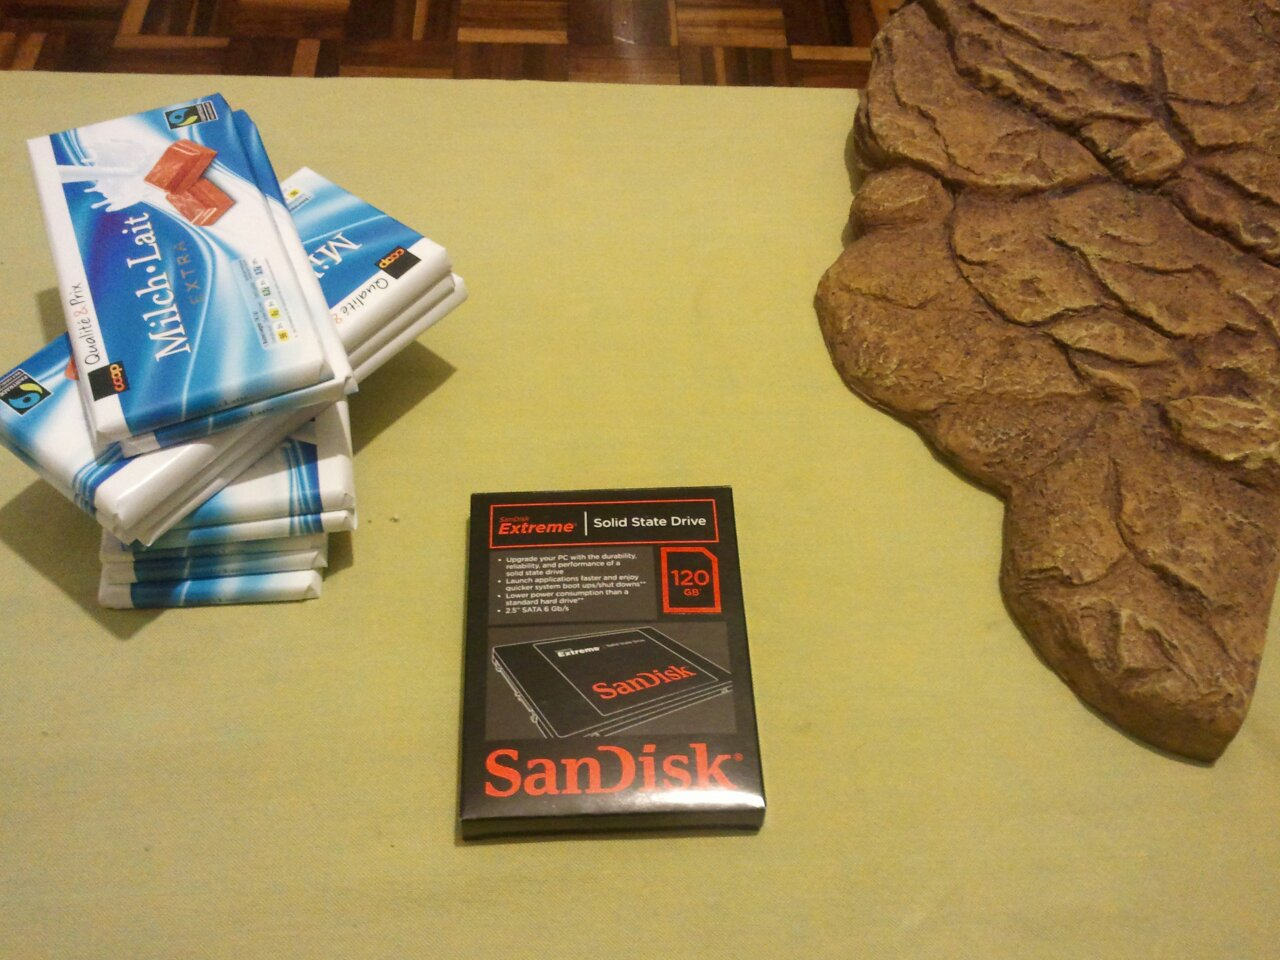 120 GB SanDisk Extreme SSD